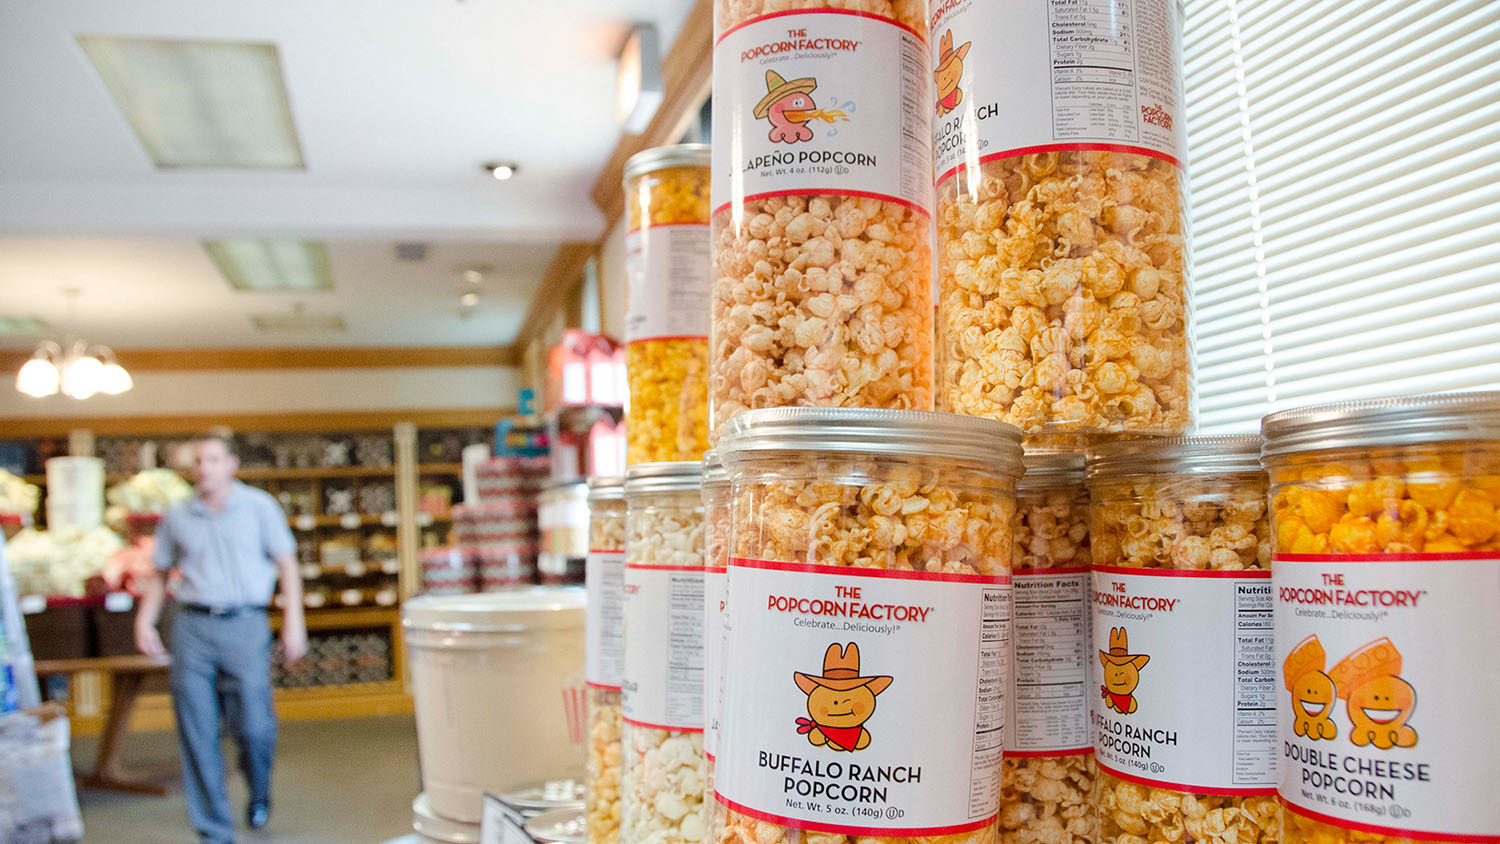 The Popcorn Factory Store